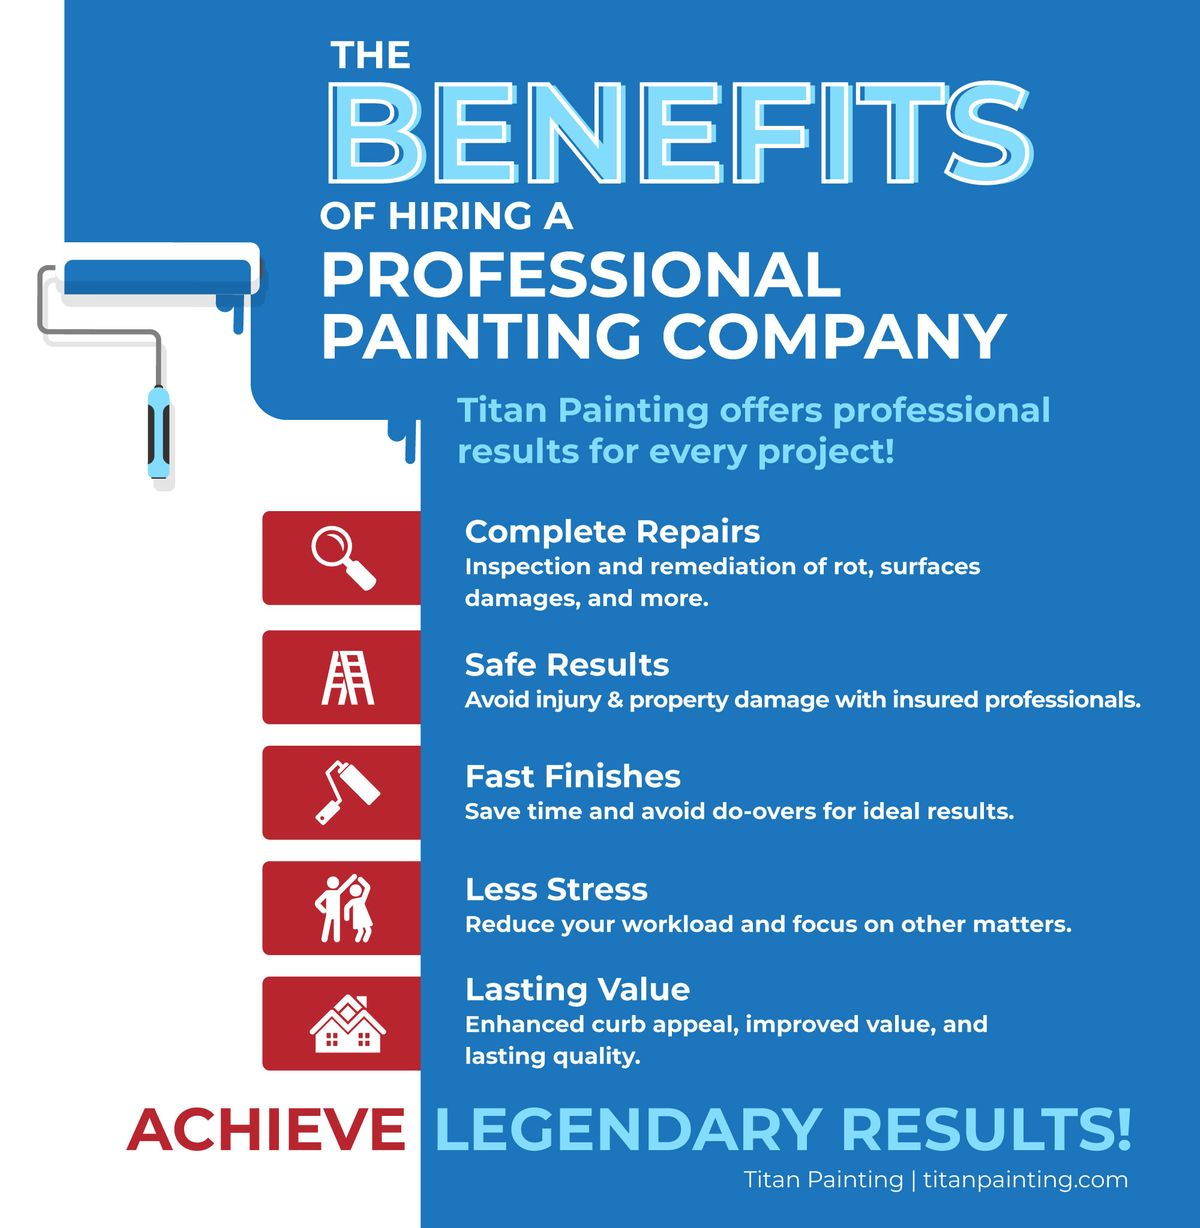 Benefits-of-Painting-Company.jpg